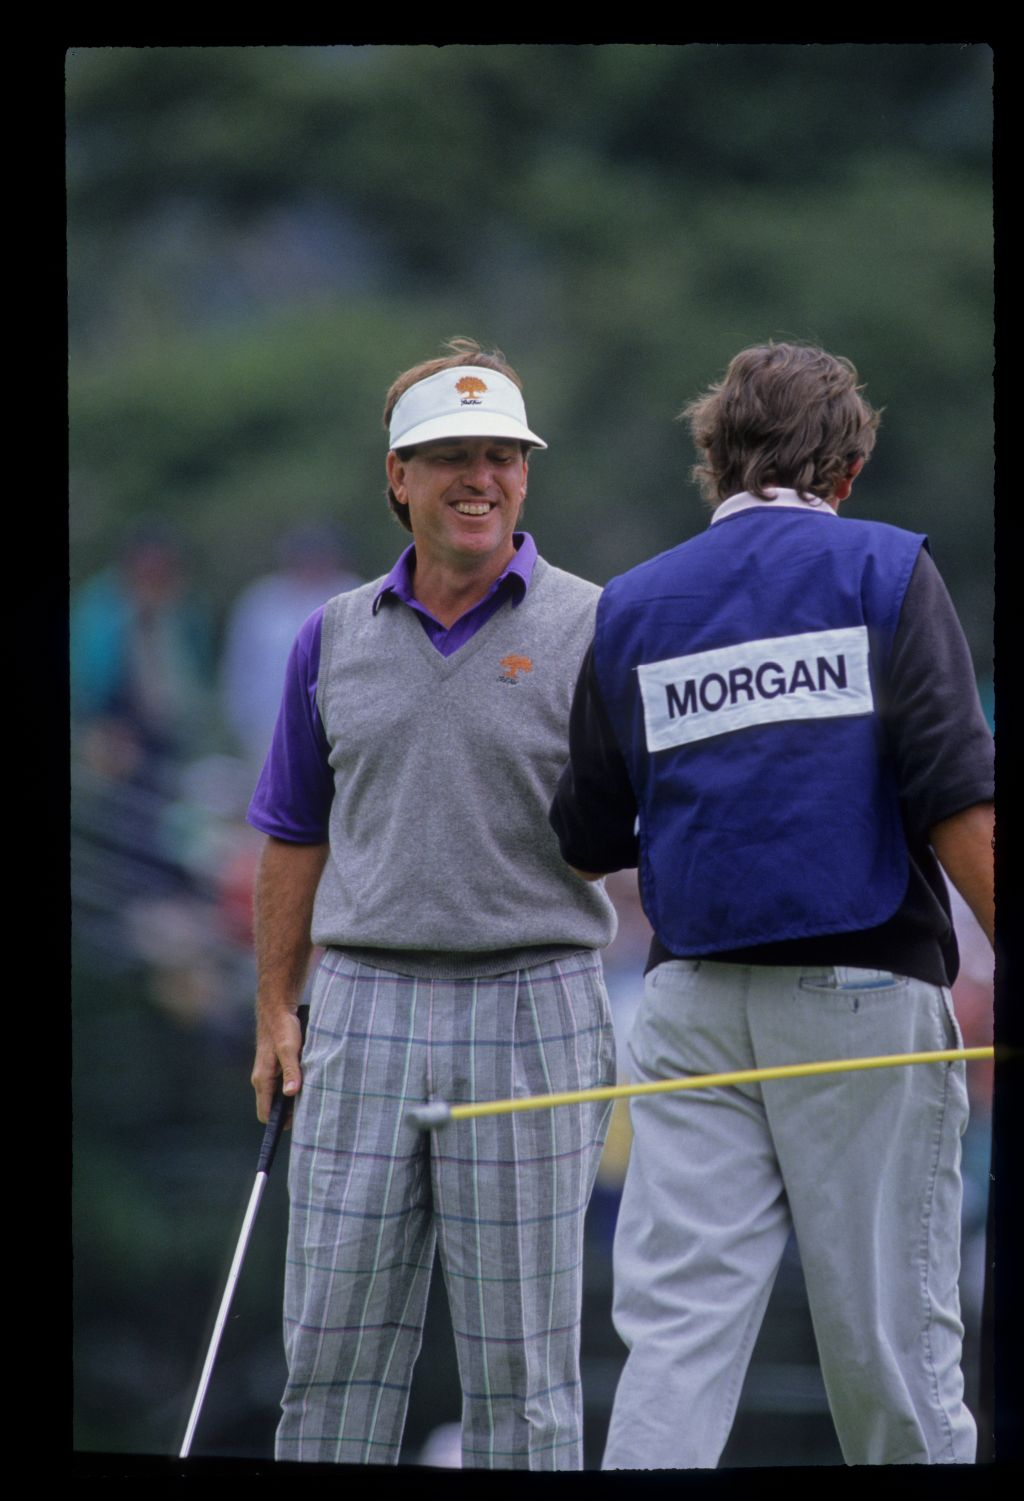 Gil Morgan smiling with his caddie during the 1992 US Open